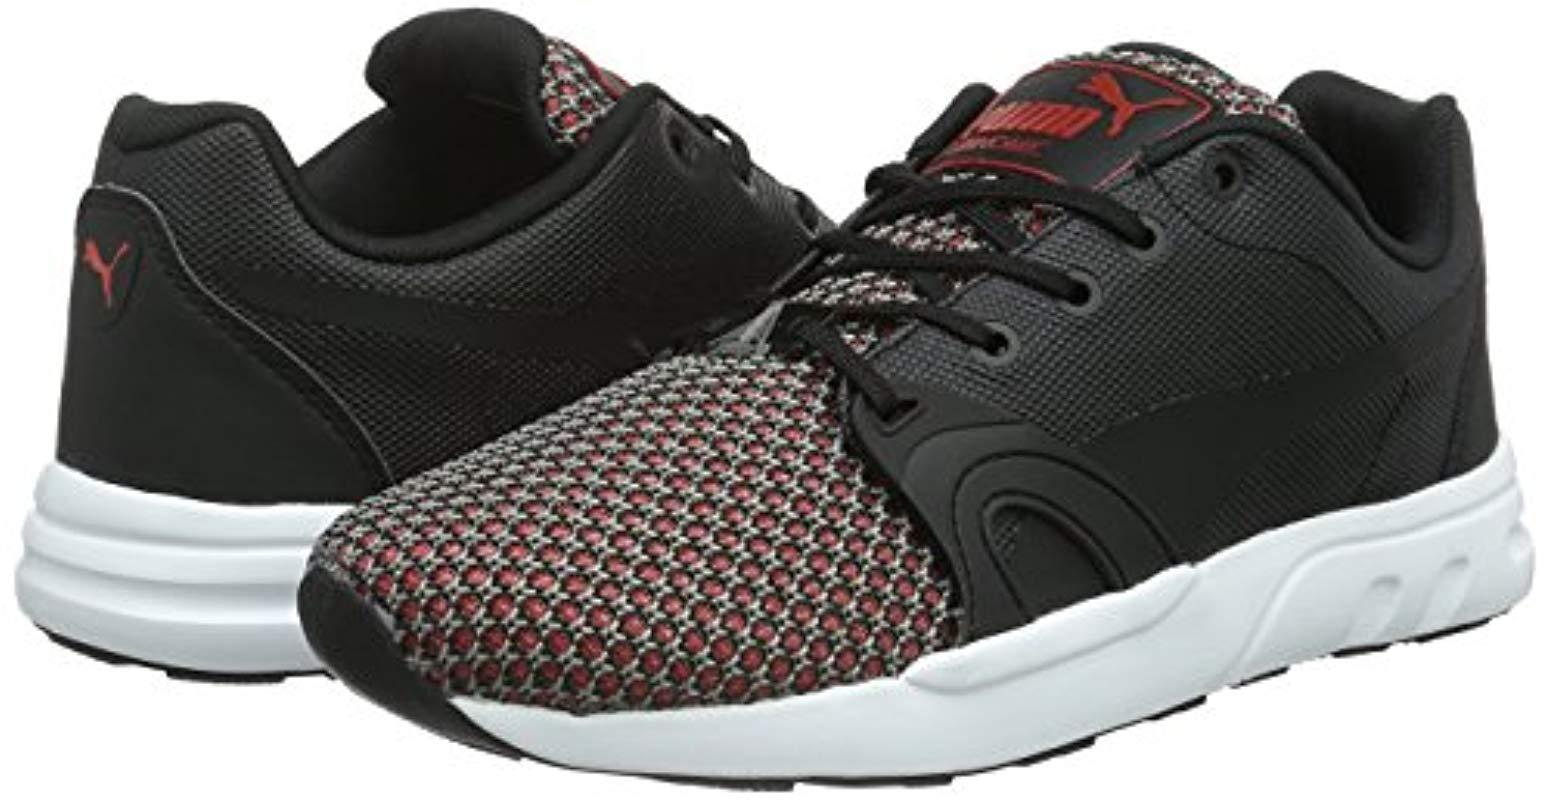 Puma Lyst For S Top In Black Xt Men Filtered's Low Sneakers Nn0wvm8